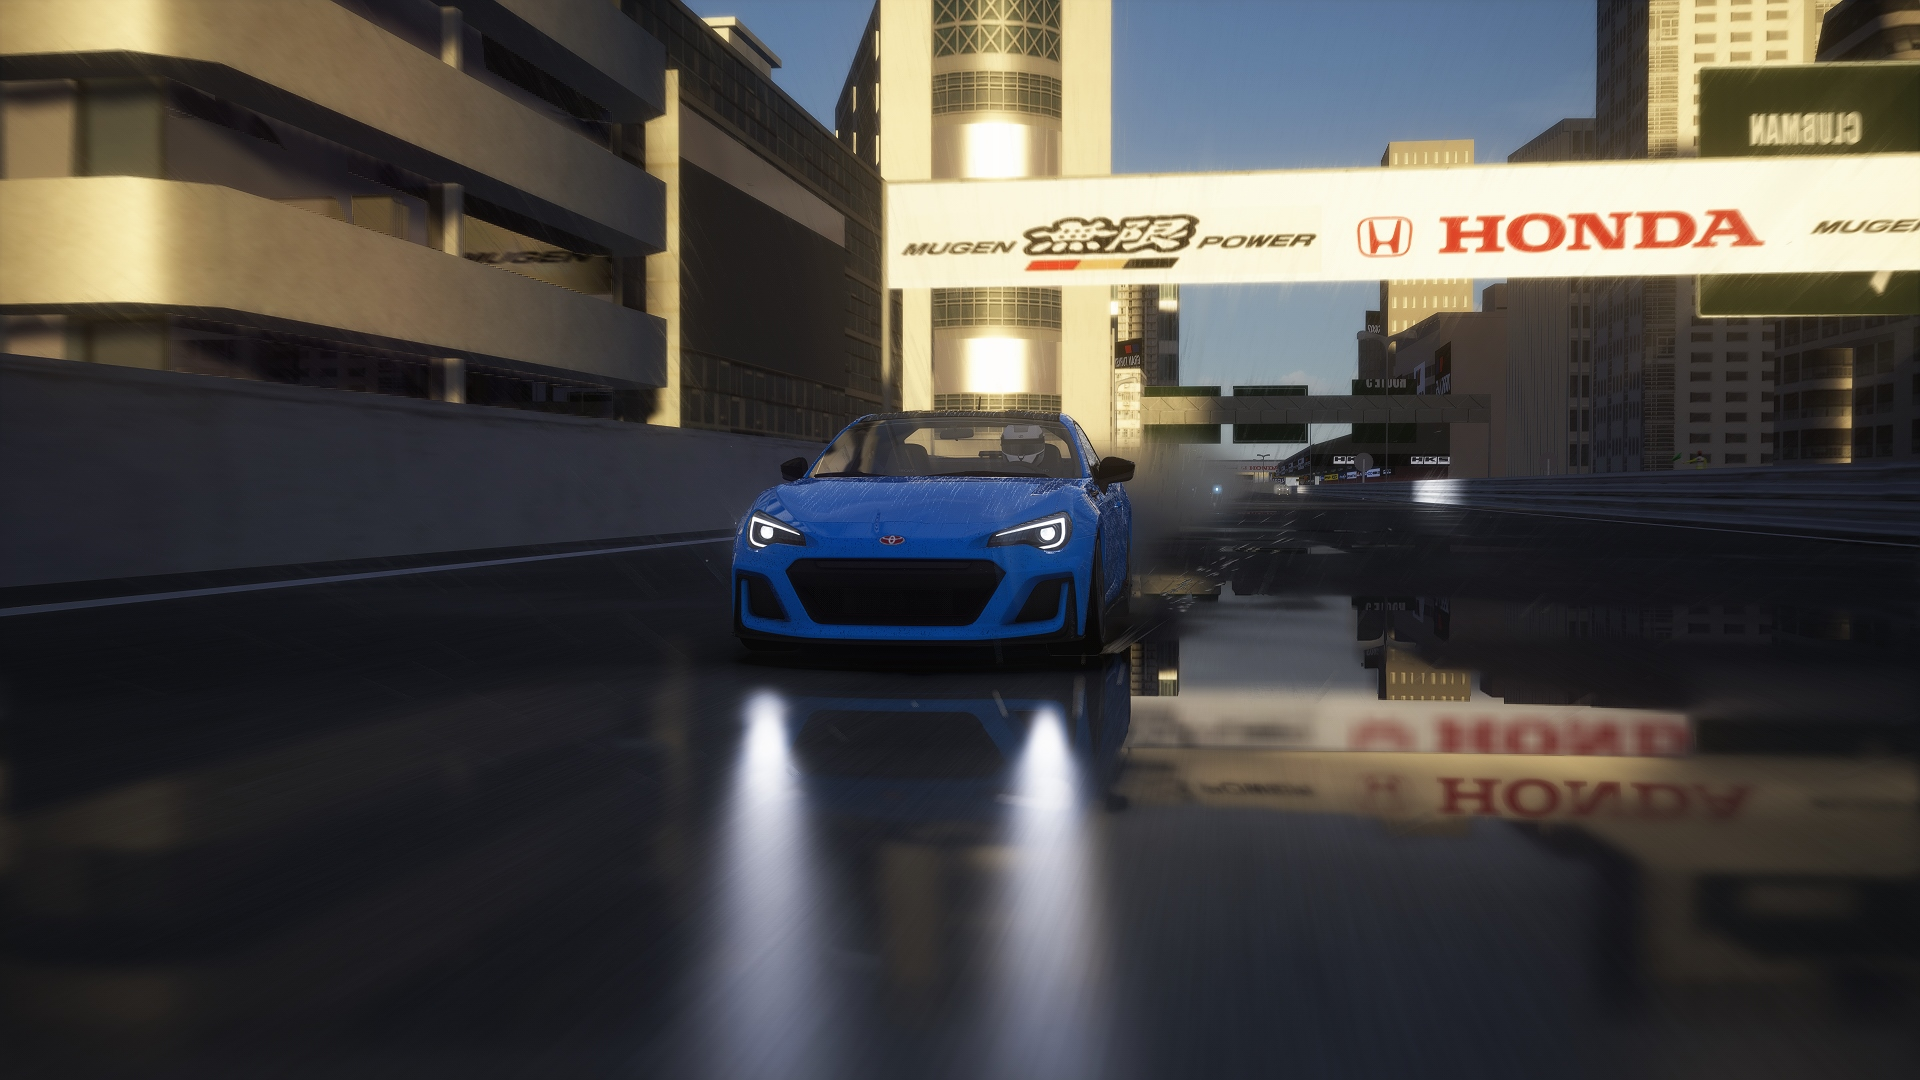 Screenshot_au_toyota_gt86_trd_special_stage_route_5_1-6-121-1-41-35.jpg